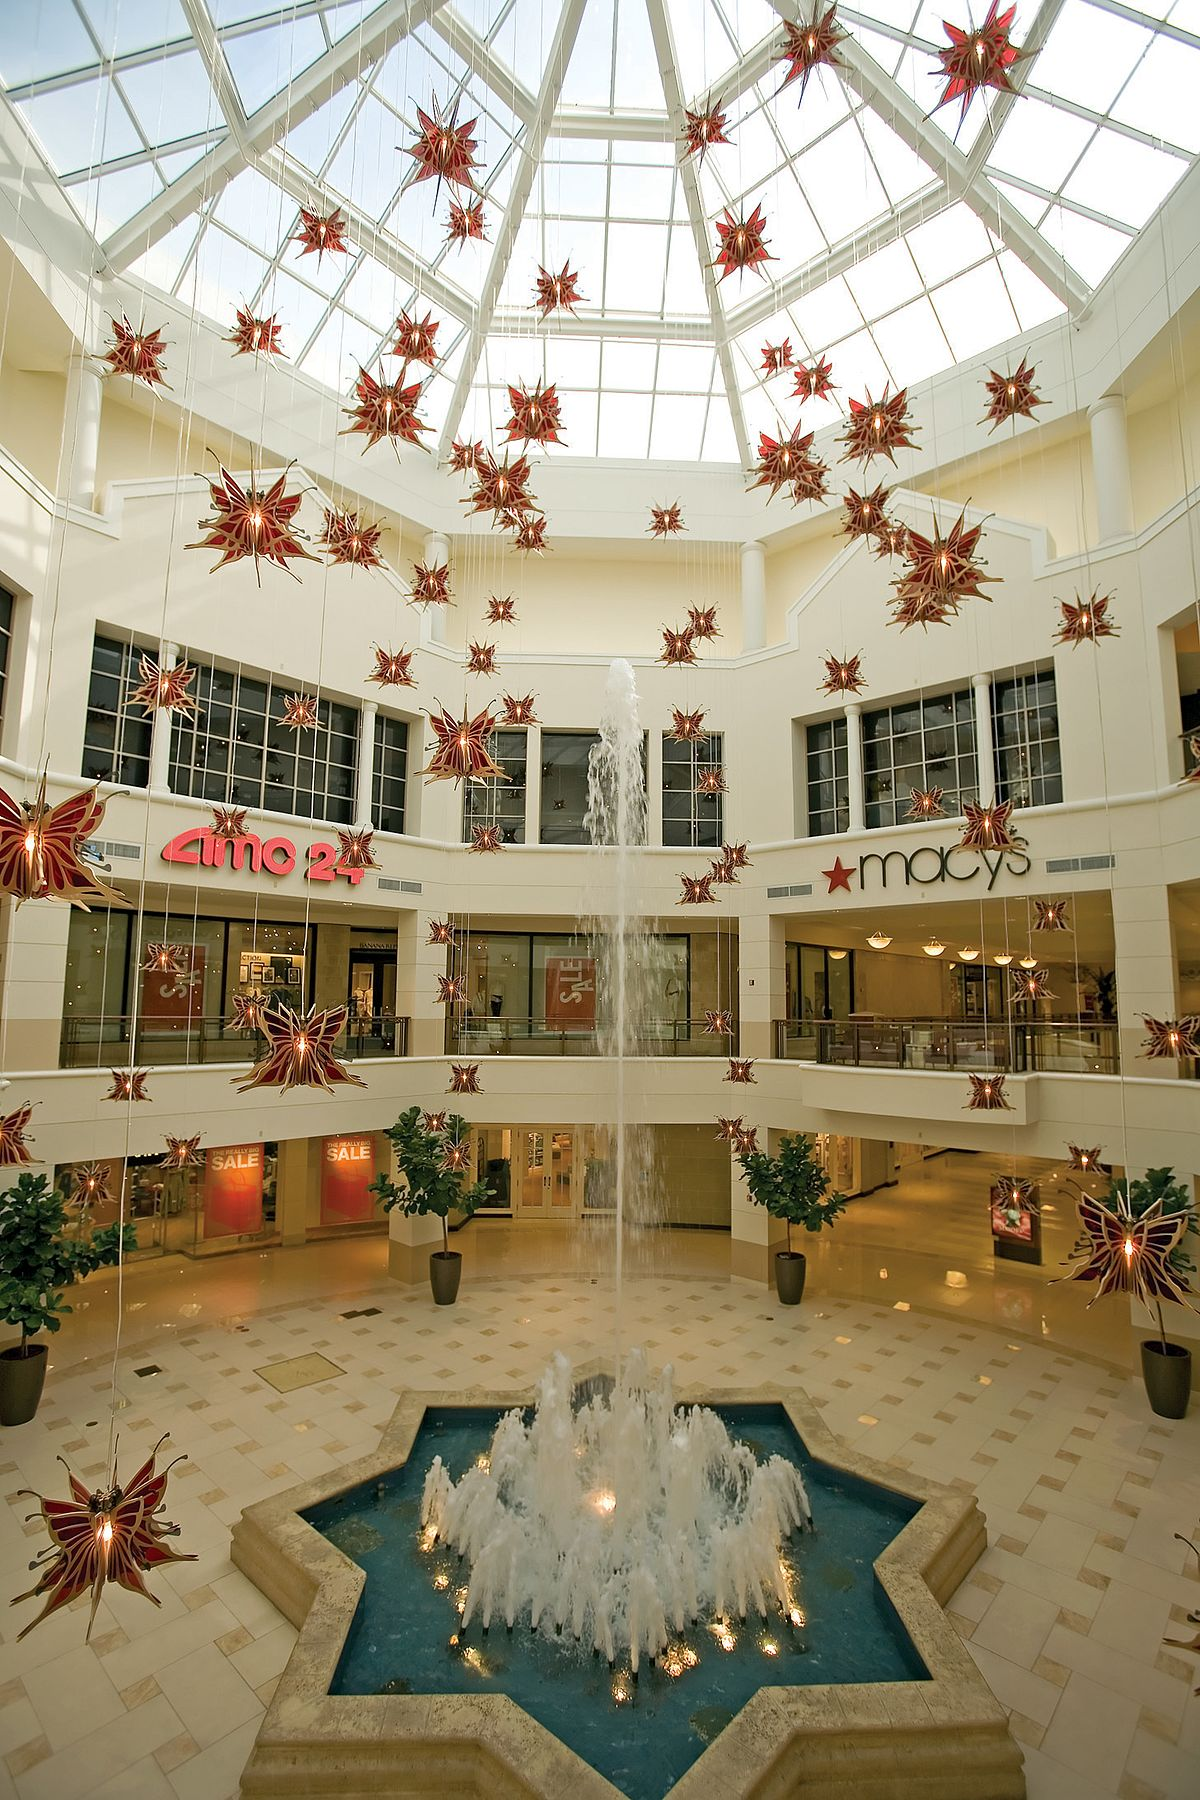 Oct 07, · Aventura M, General Manager at Aventura Mall, responded to this review Responded August 29, Simonetta, thank you for your review! We are happy to hear you liked our boutiques and Treats Food Hall/5(K).